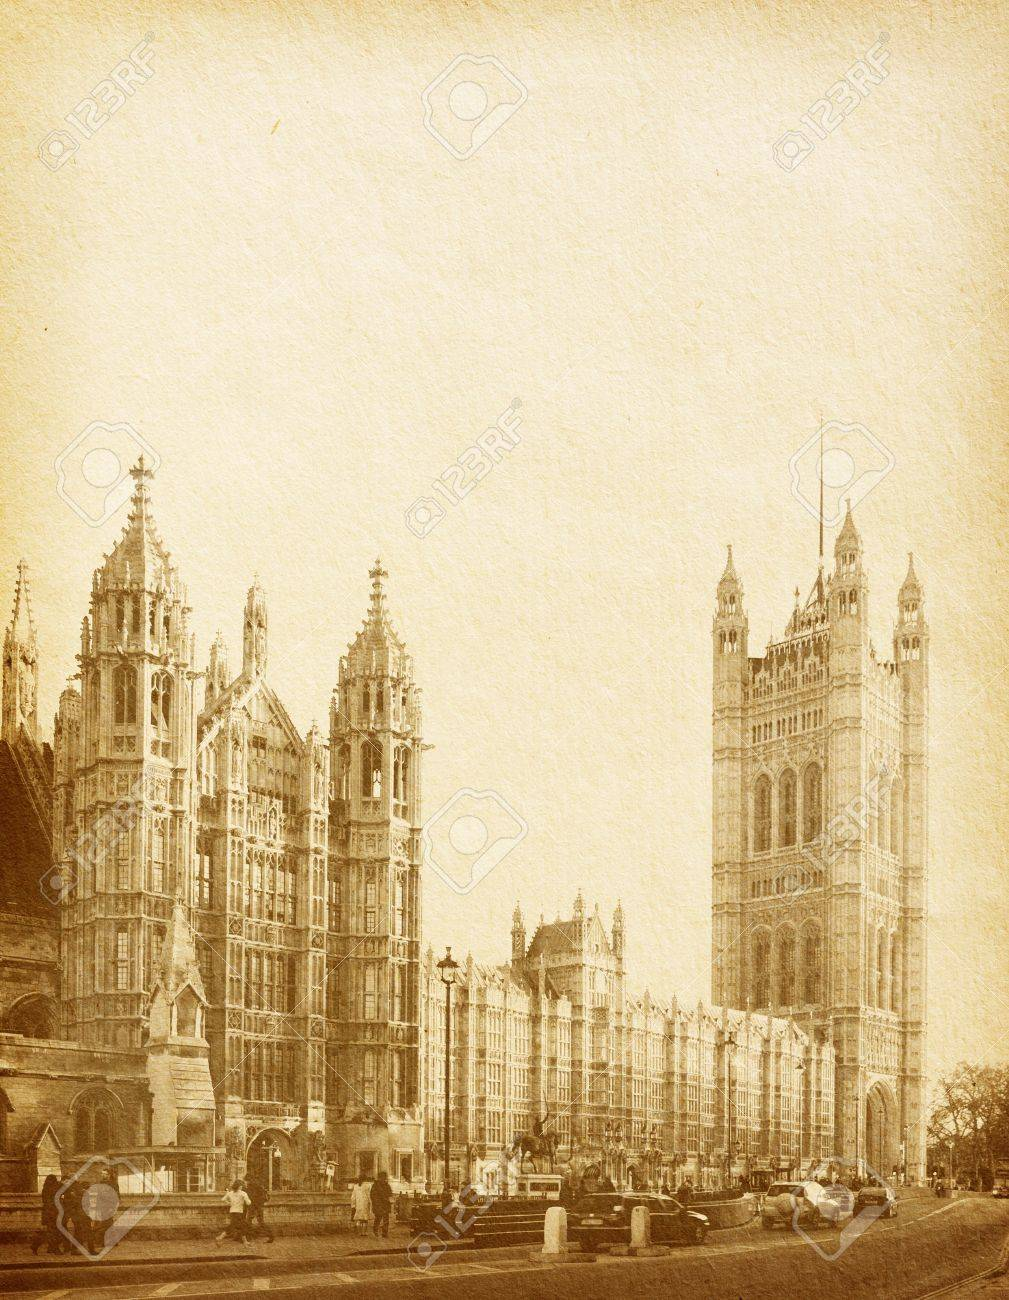 vintage paper textures. Houses of Parliament in London UK view from Abingdon street Stock Photo - 12047028